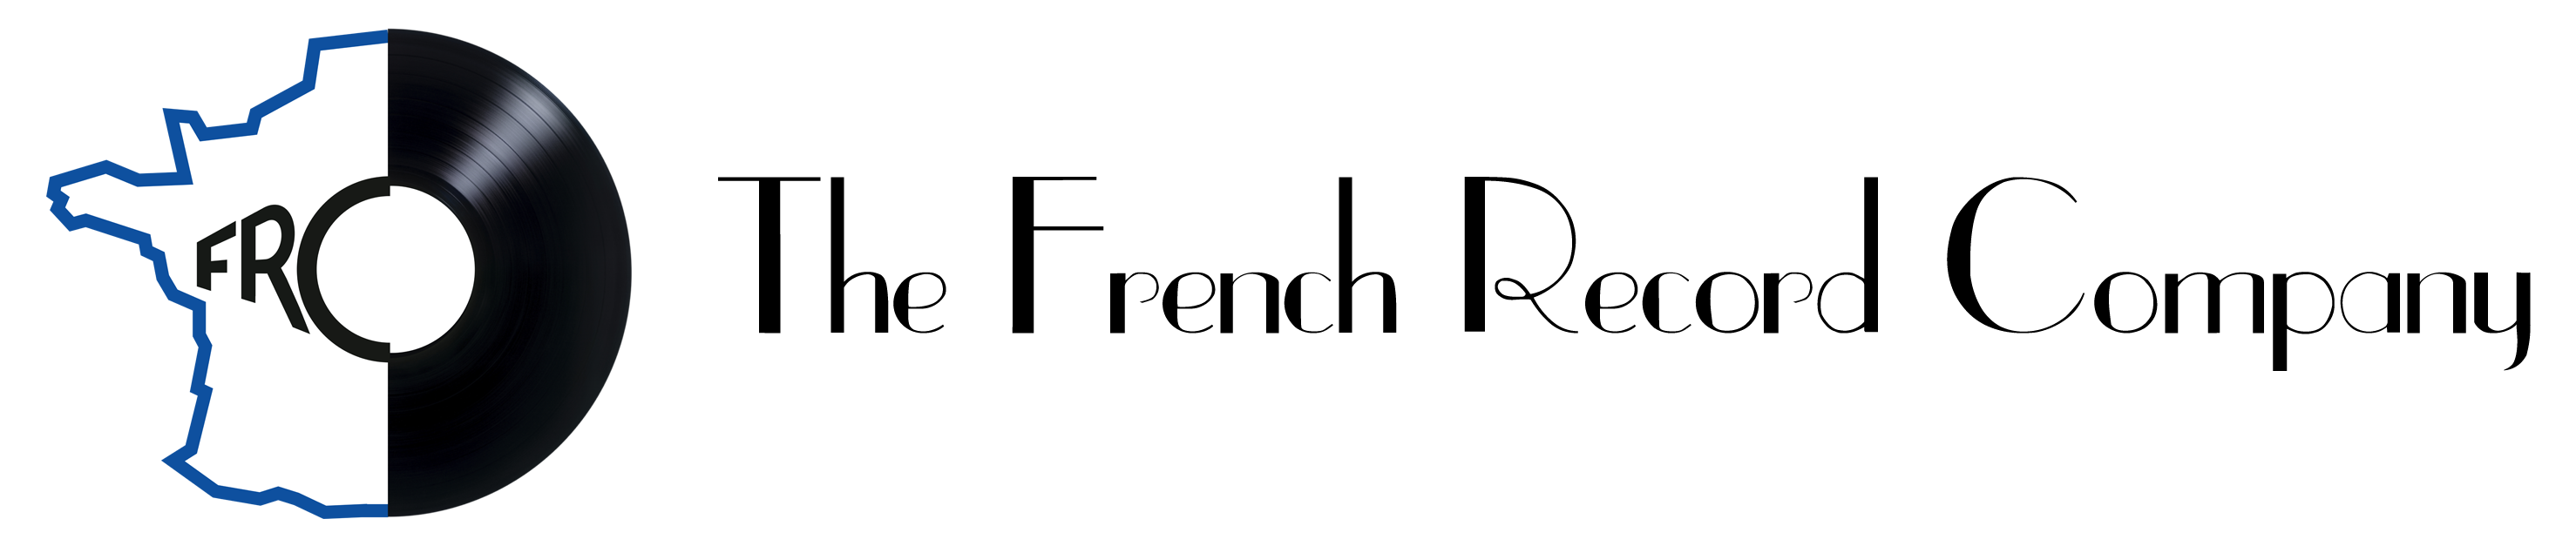 The french record company